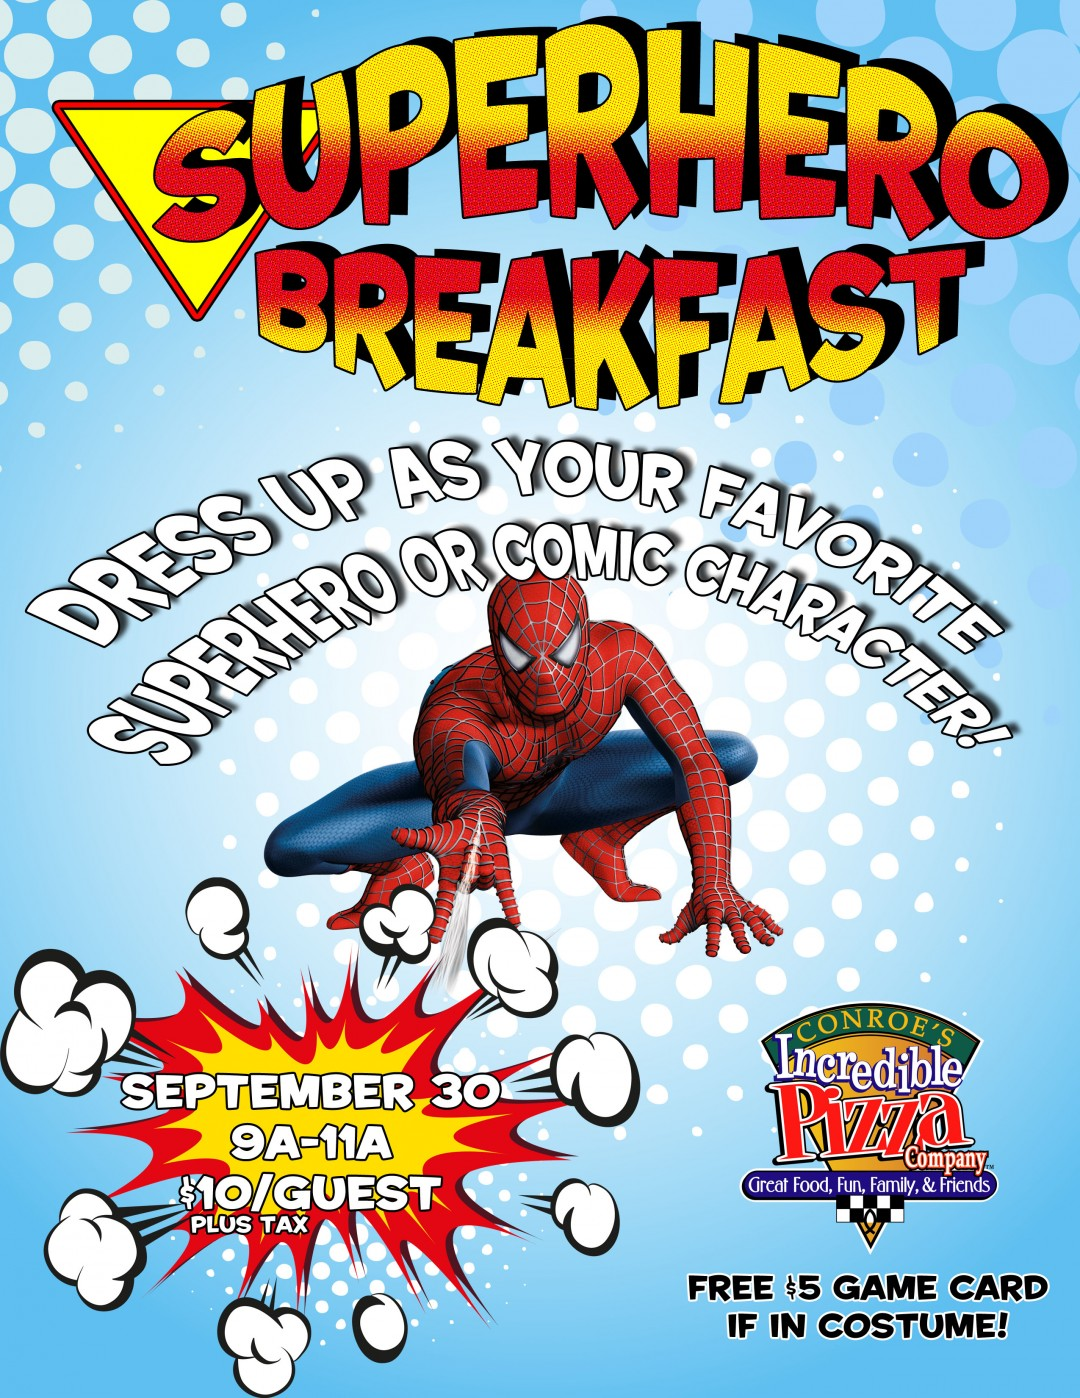 Superhero Breakfast this Weekend!